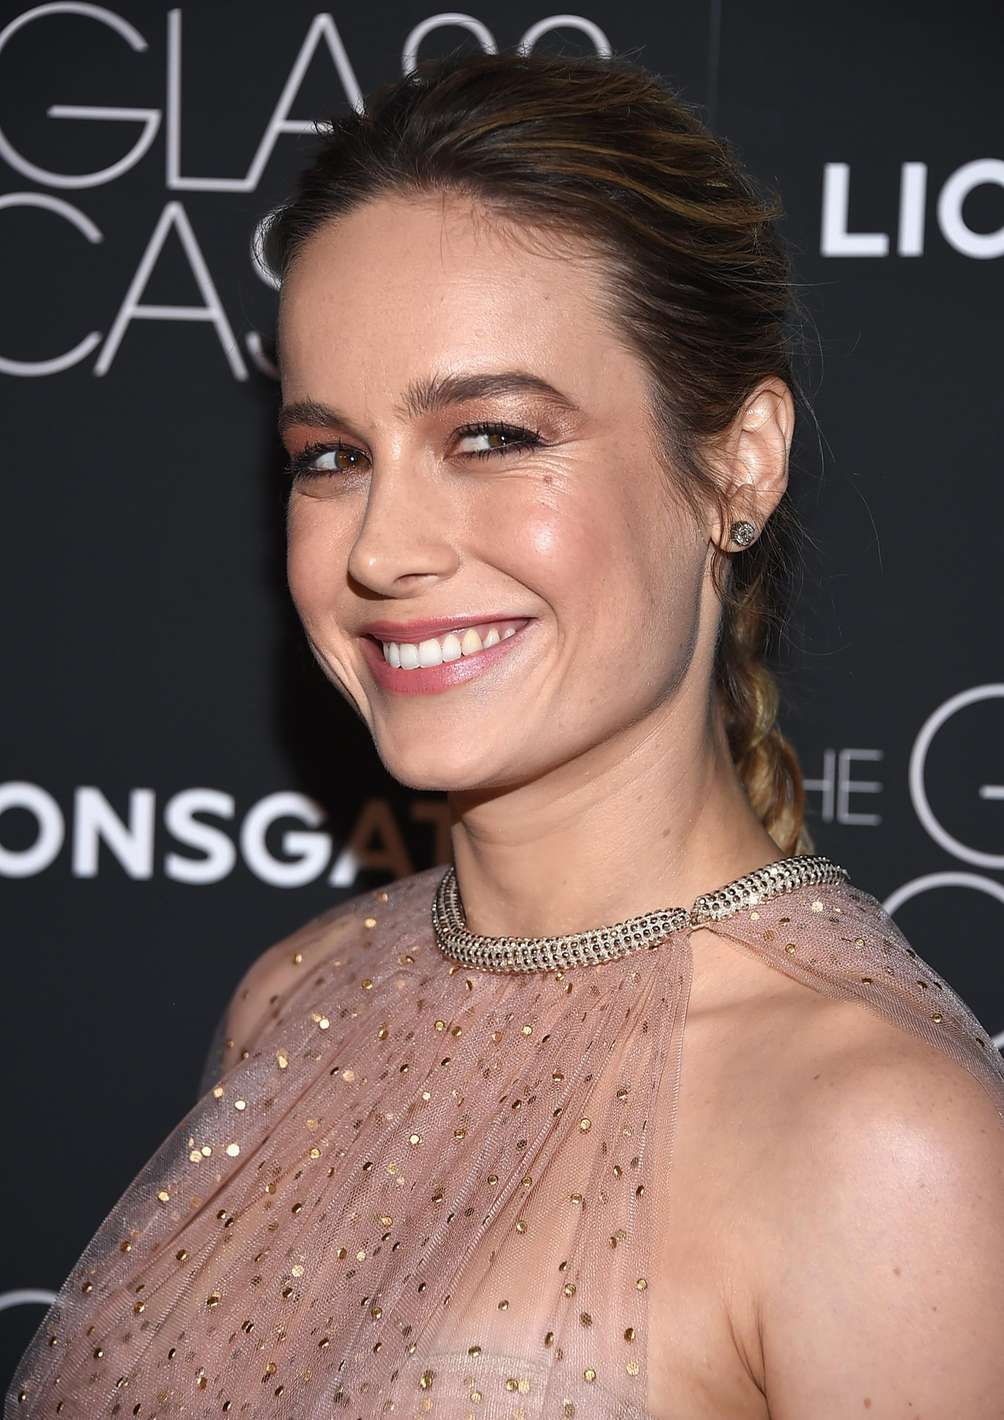 Brie Larson at the New York City premiere